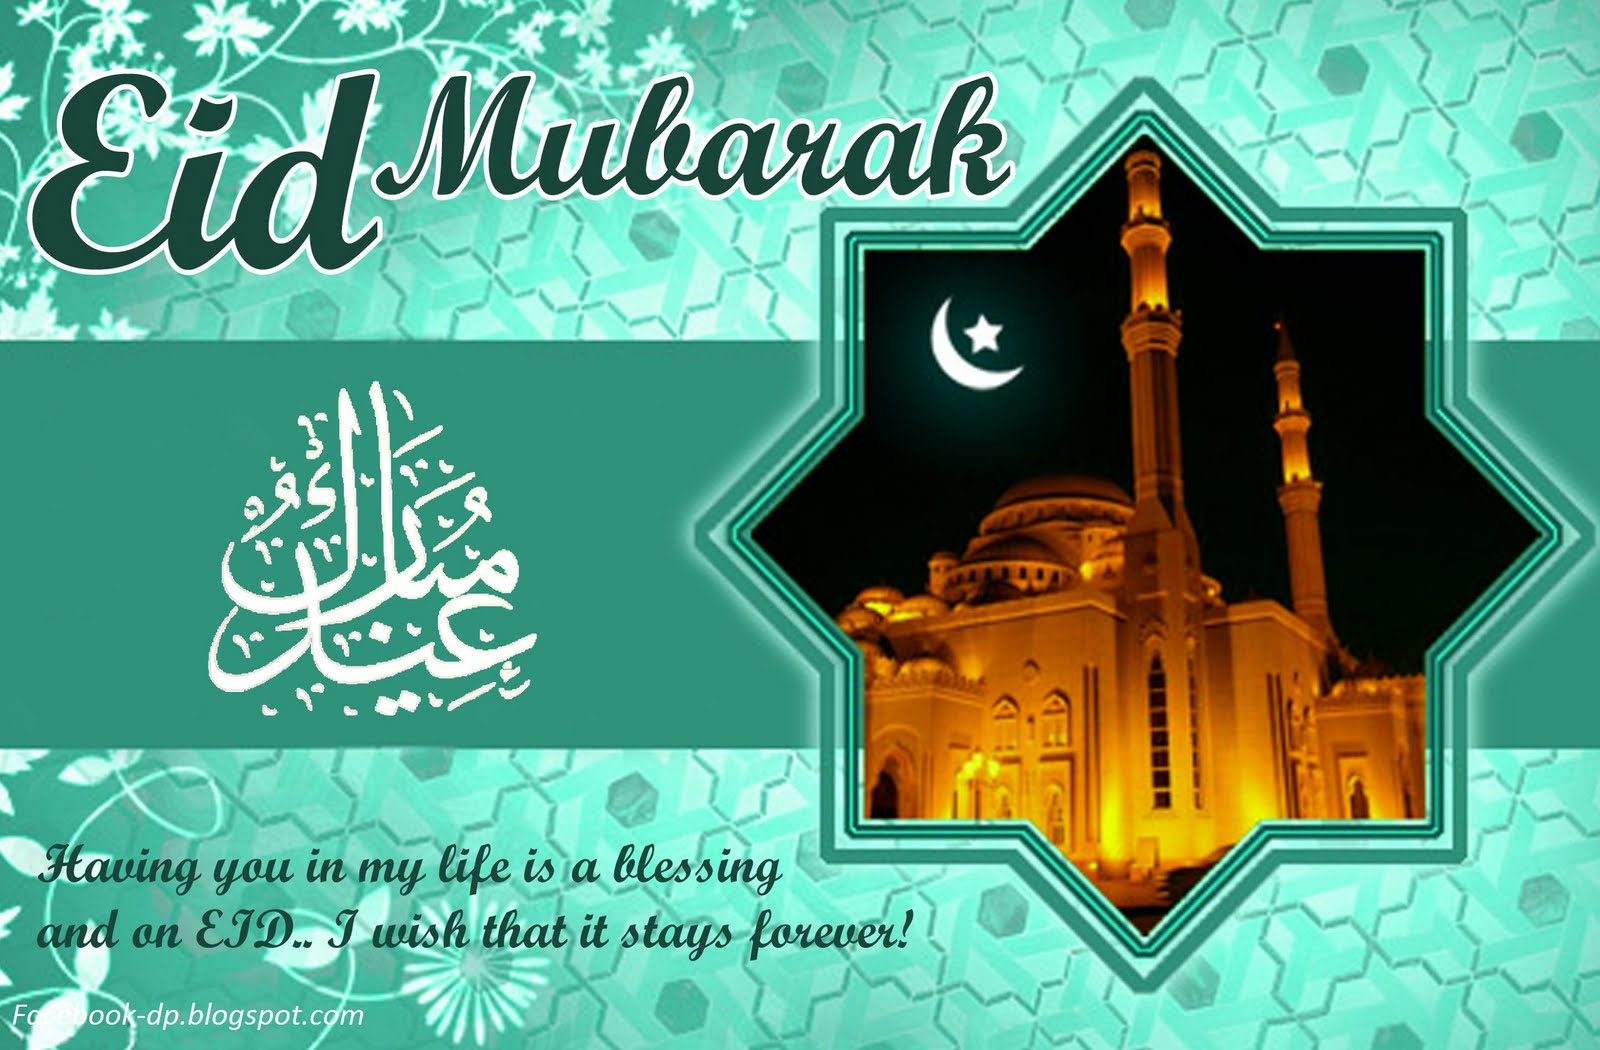 http://4.bp.blogspot.com/-IeAvT-G8Xpg/Tk1iFBHTvqI/AAAAAAAAALg/Ybqz2YXex9k/s1600/Eid+wallpapres+dp%252Ceid+greetings%252C+new+eid+cards+for+friends%252Cfor+brothers%252Cfor+sister%252Cfor+lovers%252Cfor+girls%252Cfor+boys+%252Cbeautiful+%252C+lovely+%252C+cute%252Cfacebook%252Cimage%252Cpicture%252Cwallpapers%252Cfacebook+profile+pic-faceboo+%25286%2529.jpg